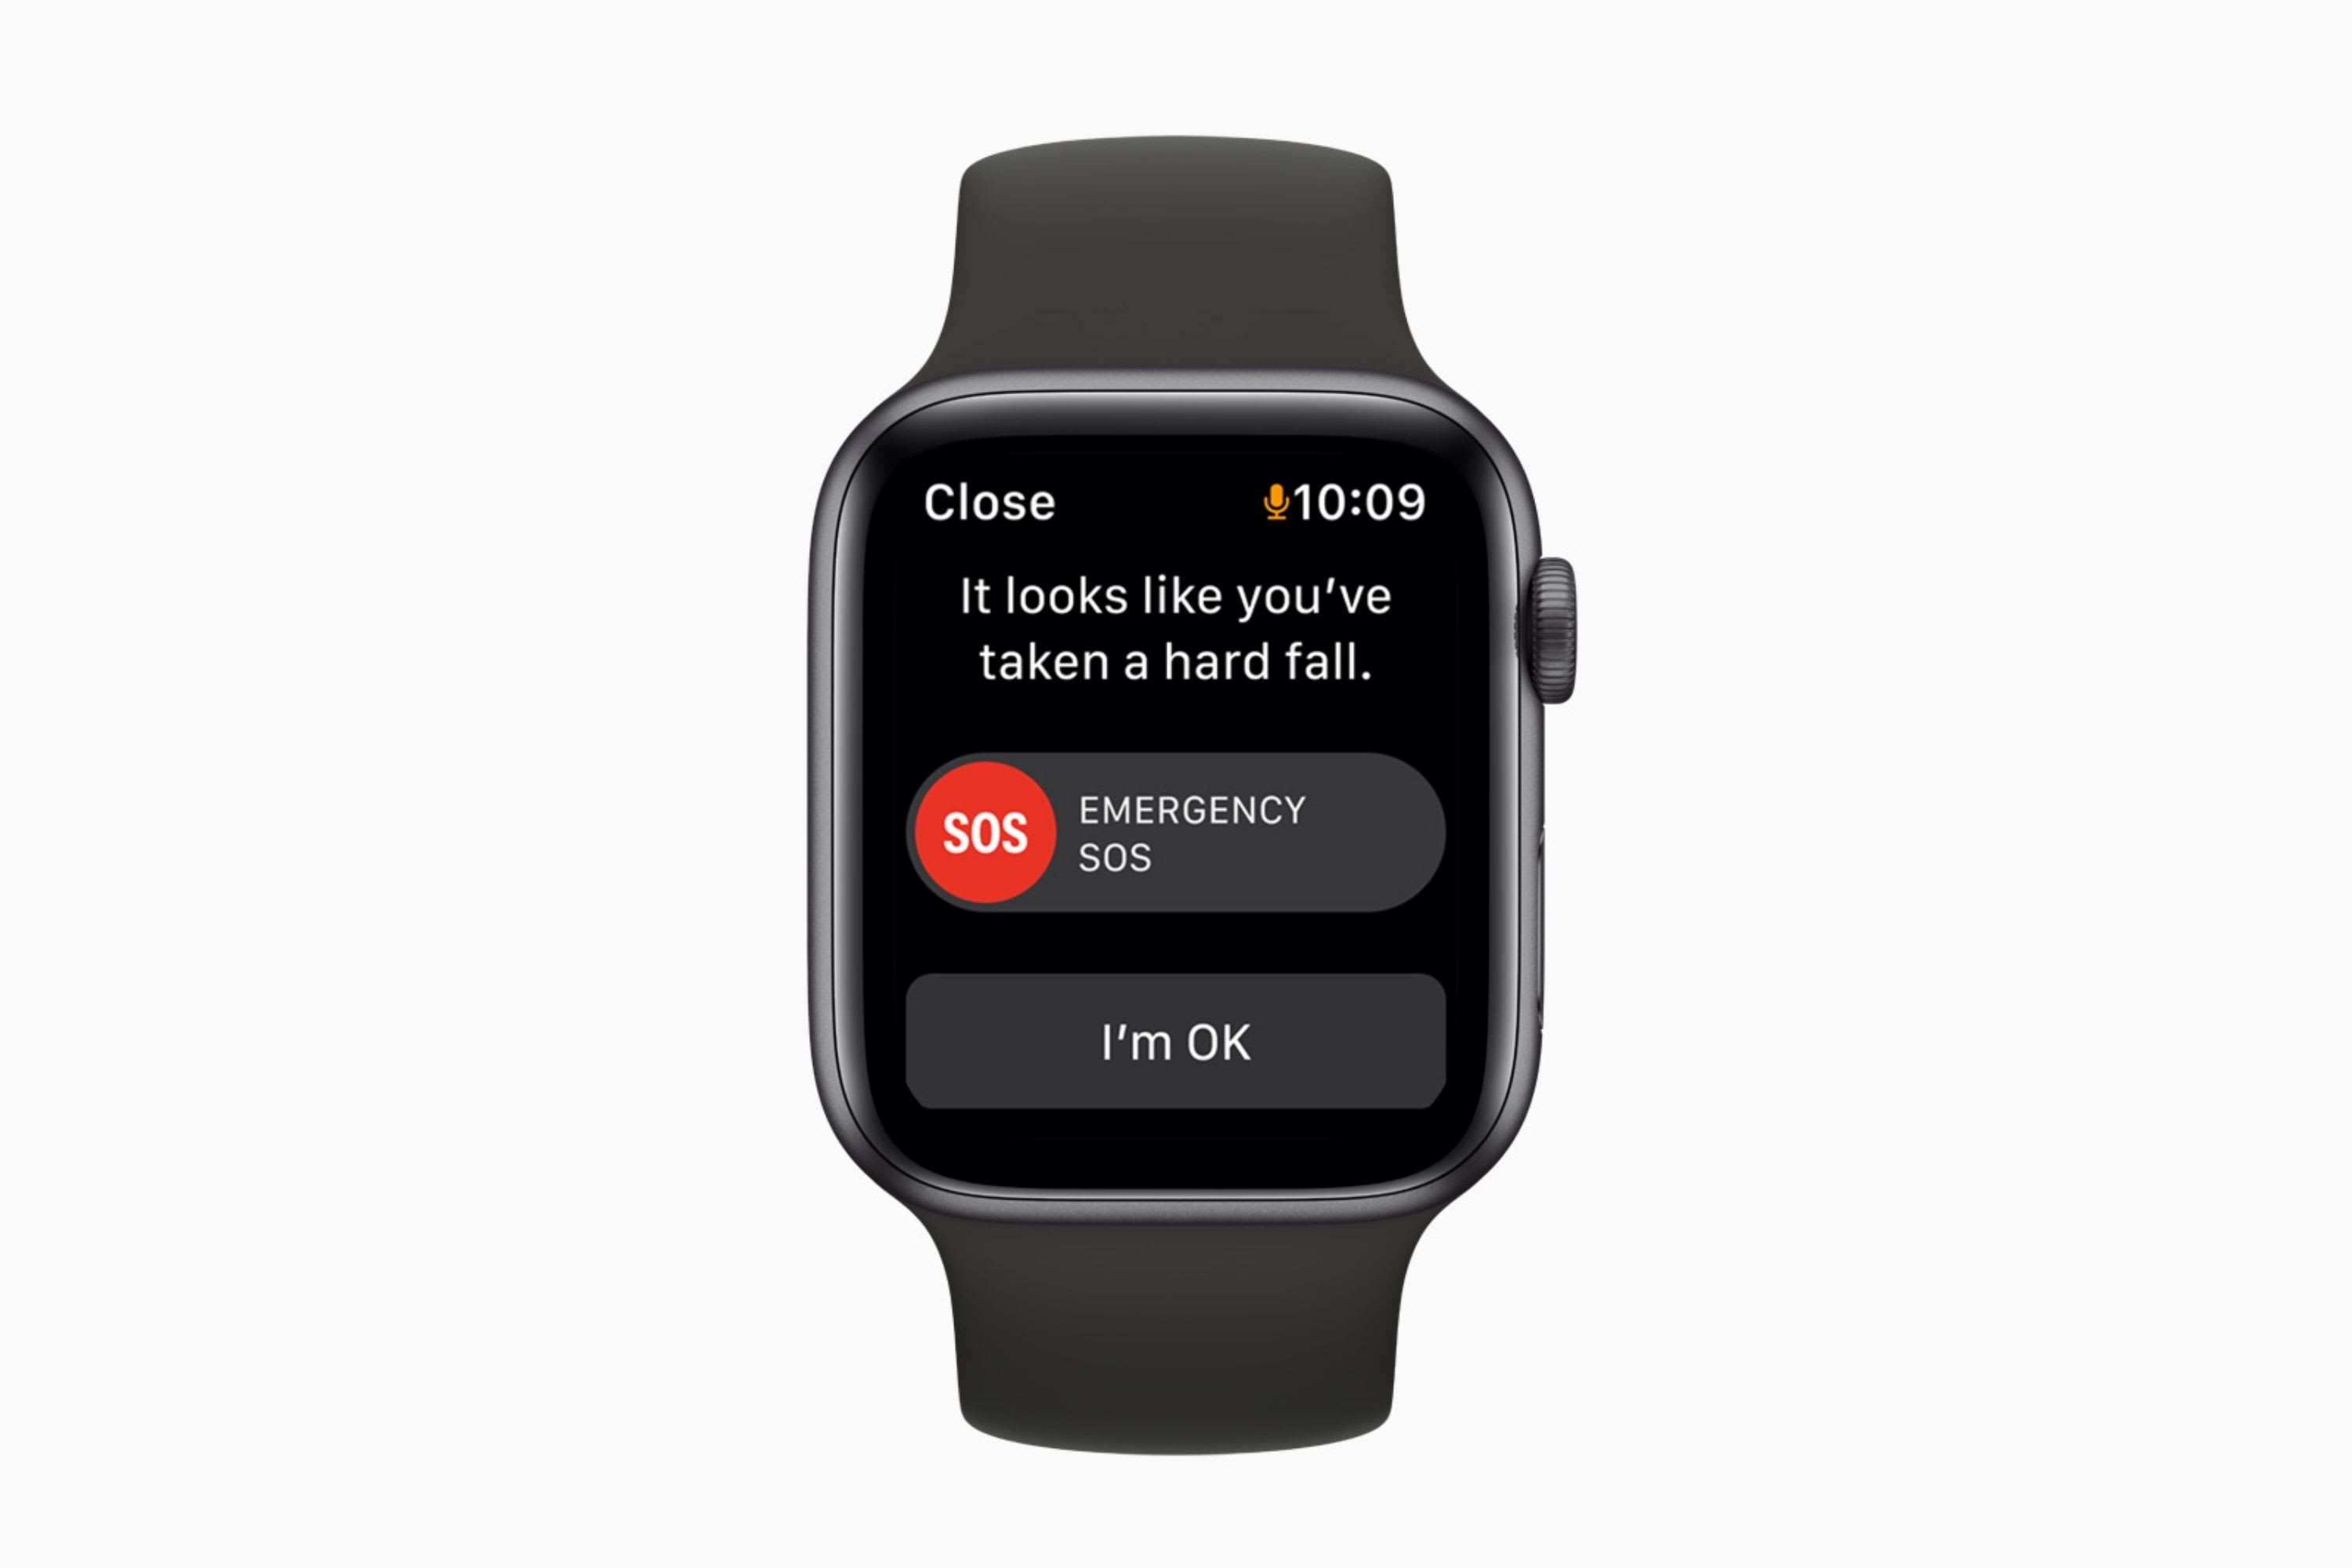 apple-watch-se-sports-s5-system-and-prioritizes-health-safety-and-fitness-like-the-watch-series-20200915-5